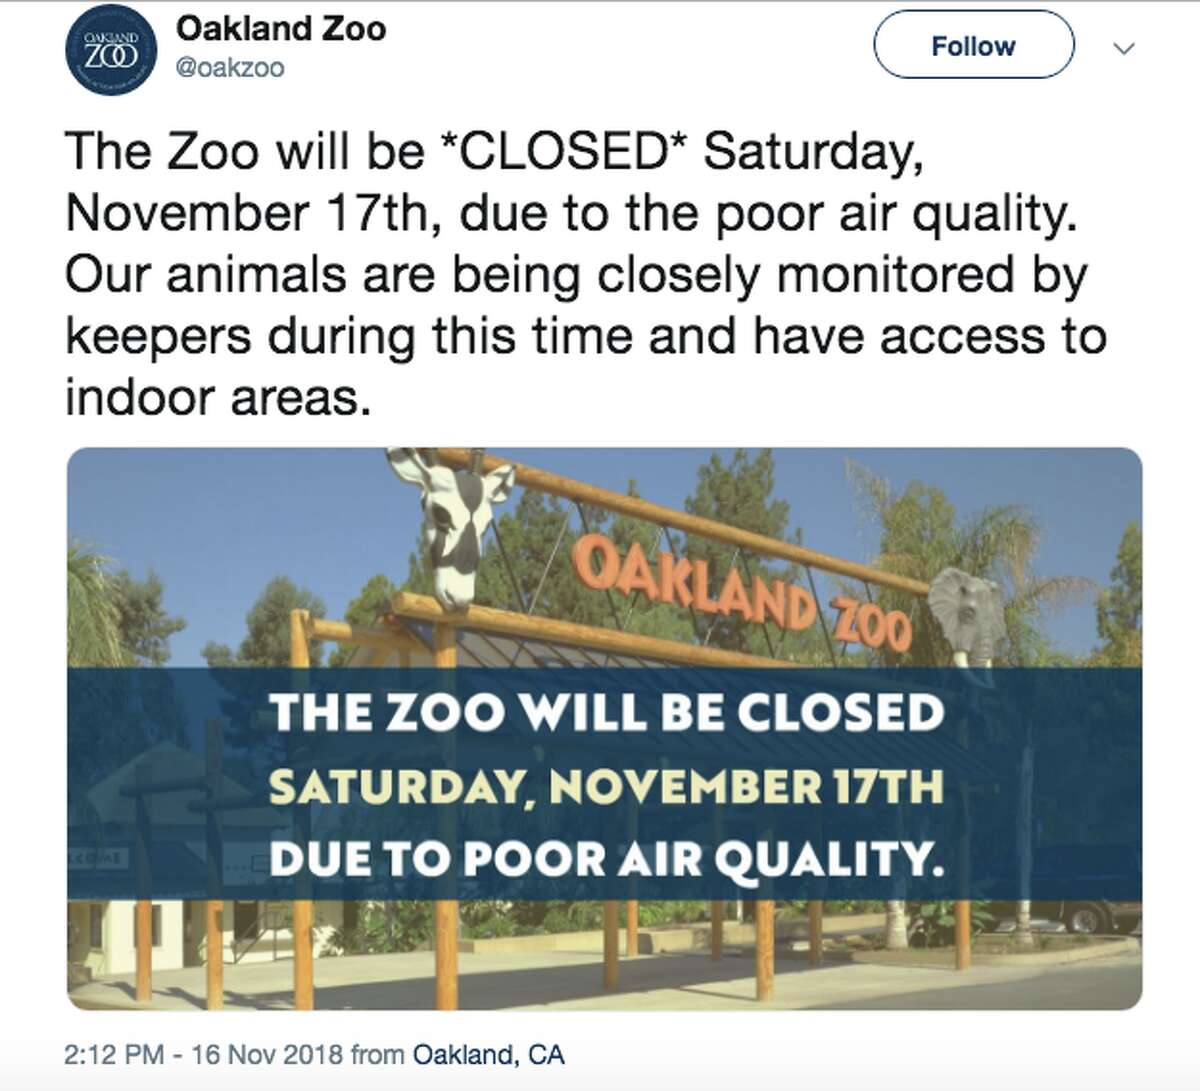 Oakland Zoo shut its doors to visitors on Friday and plans to remain closed on Saturday as poor Bay Area air quality is expected to linger into the weekend and early next week.